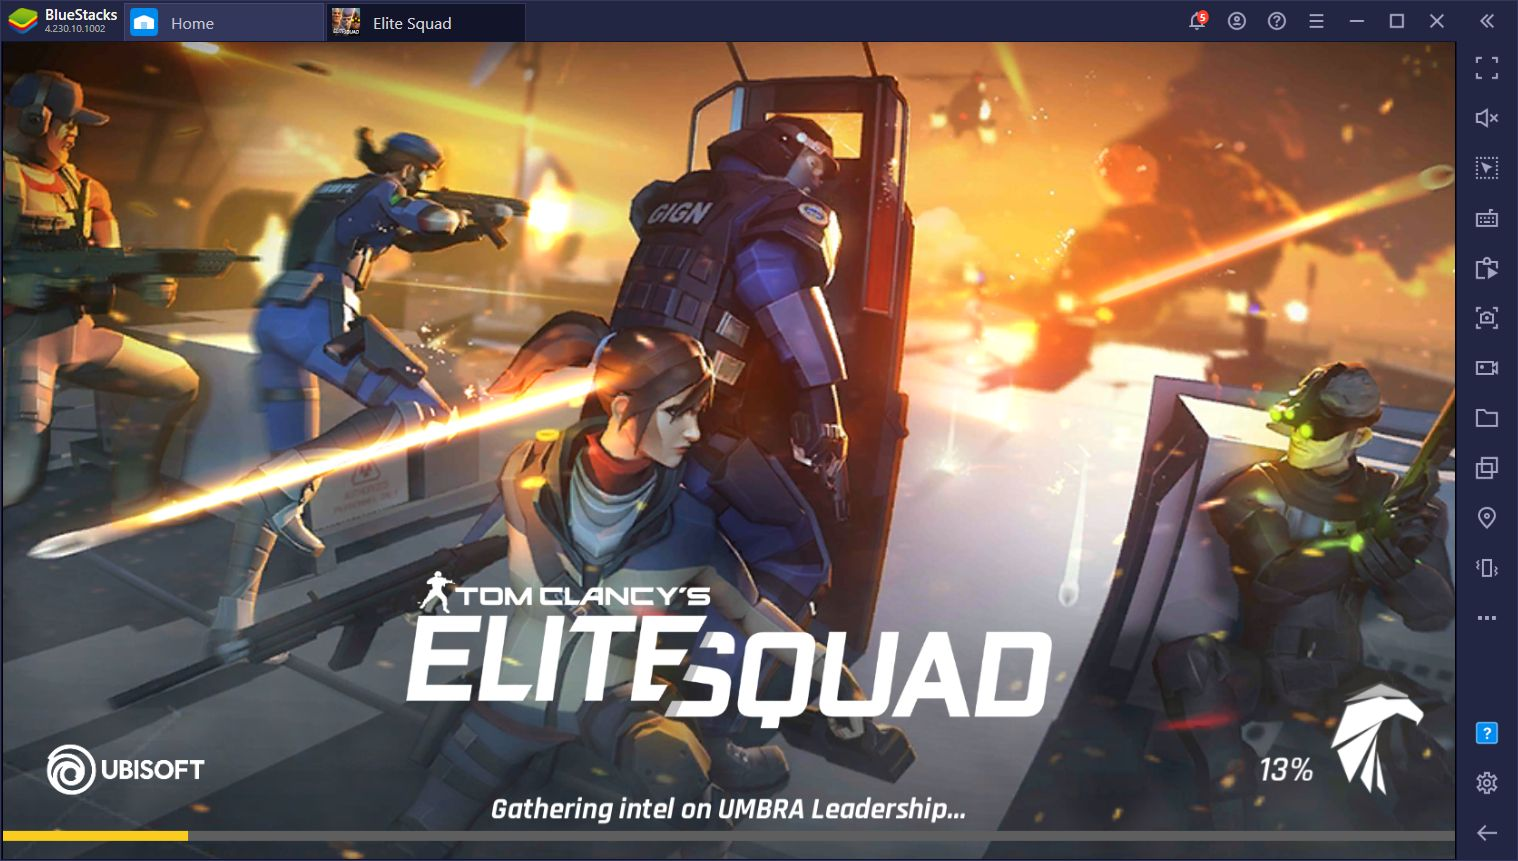 Reroll Guide for Tom Clancy's Elite Squad – How to Unlock the Best Operators From the Very Beginning